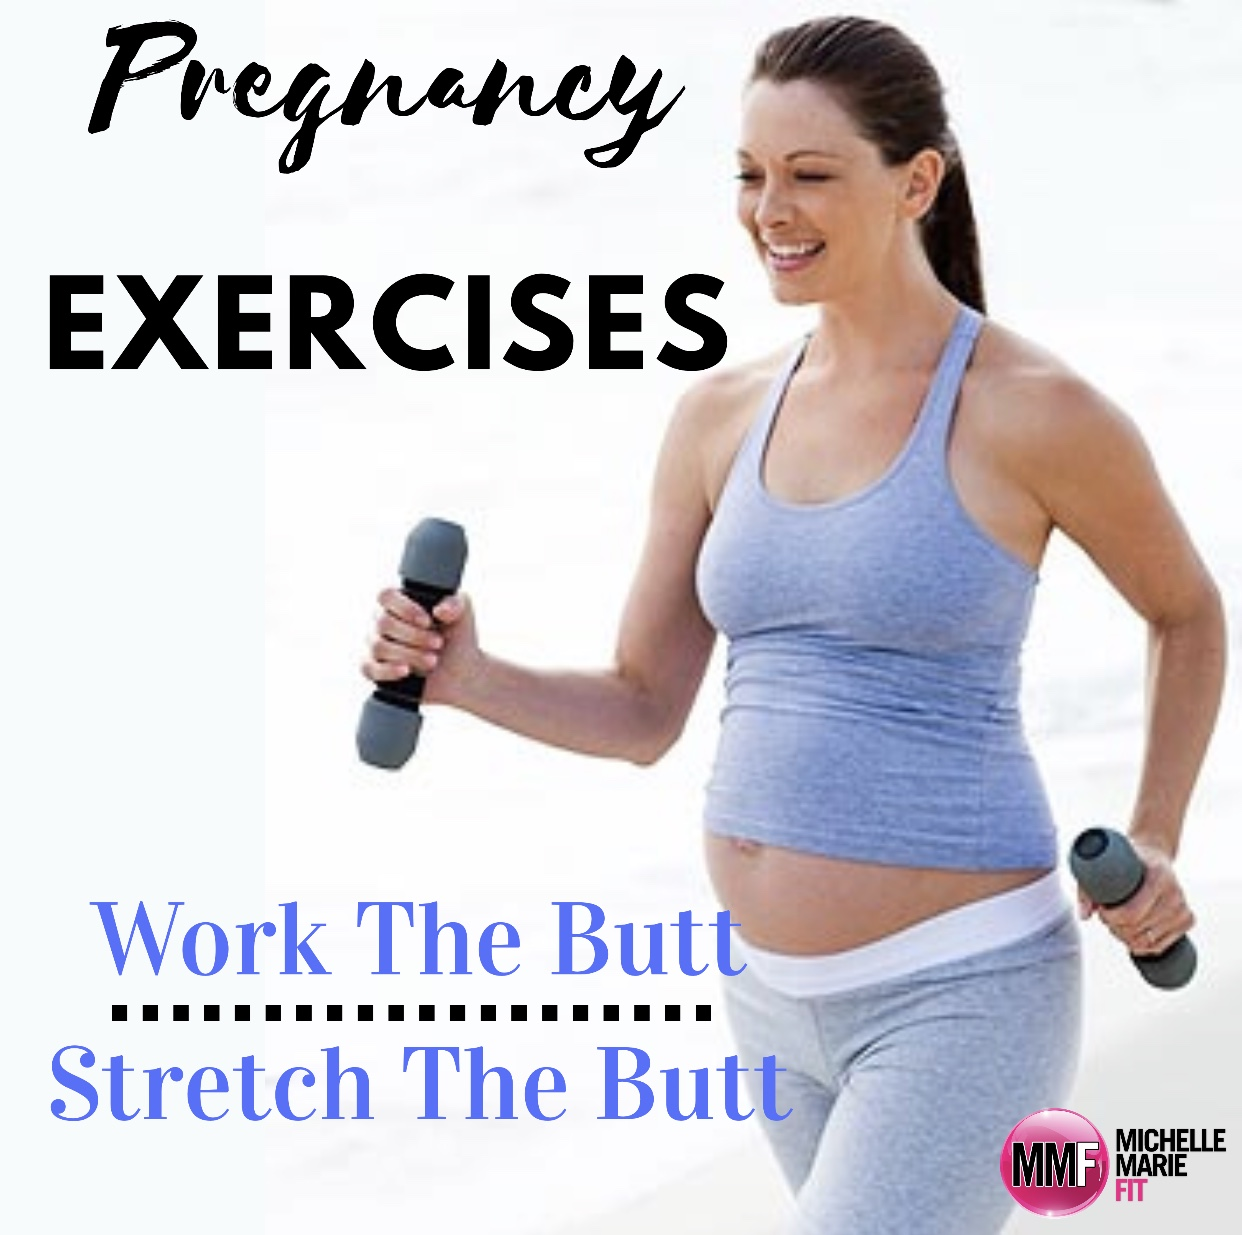 Pregnancy Exercises For The Butt